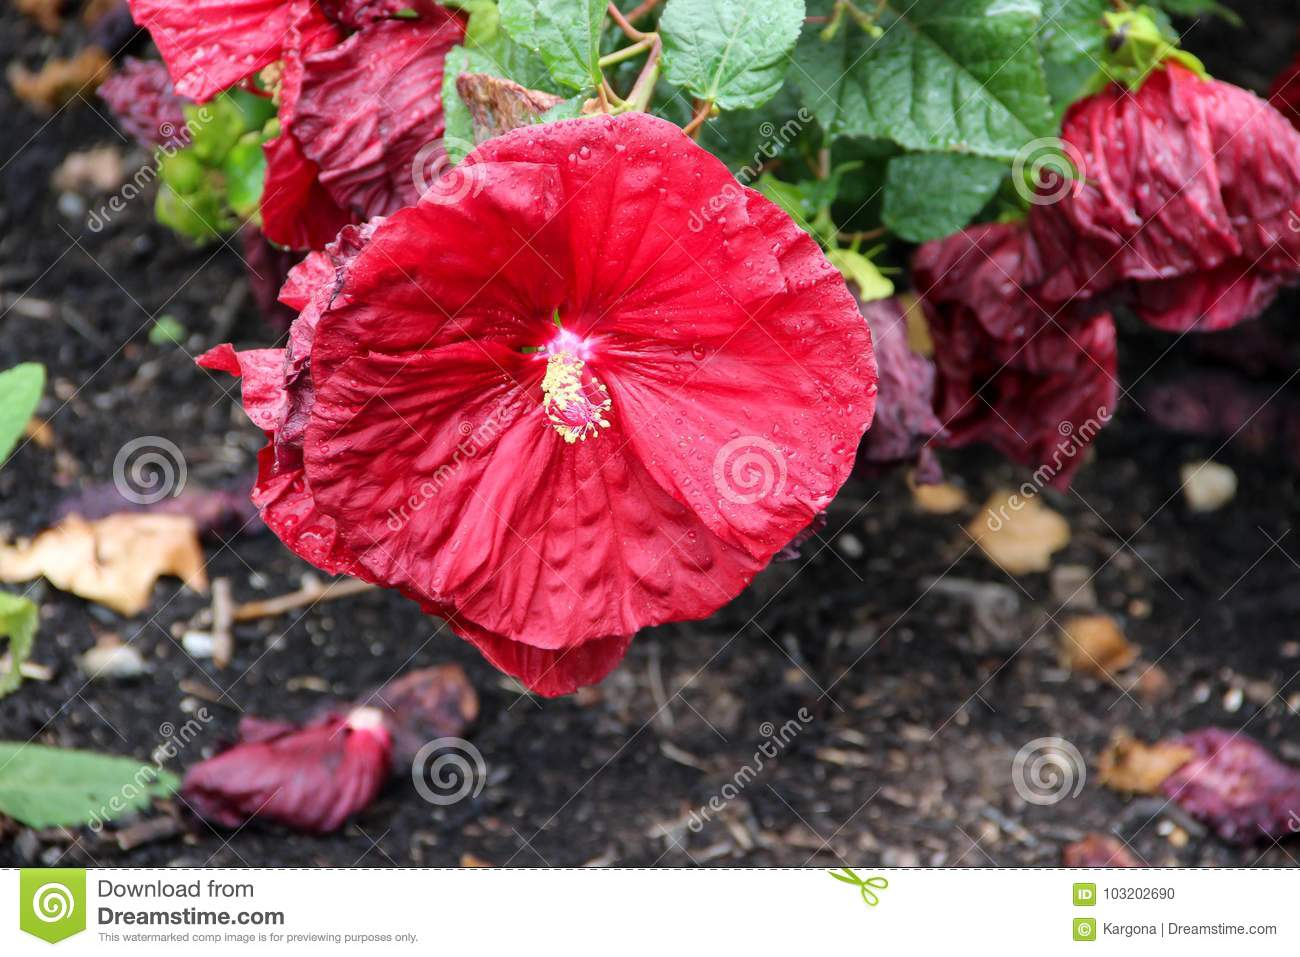 A Red Chinese Hibiscus Flower With Water Drops On Its Petals Stock